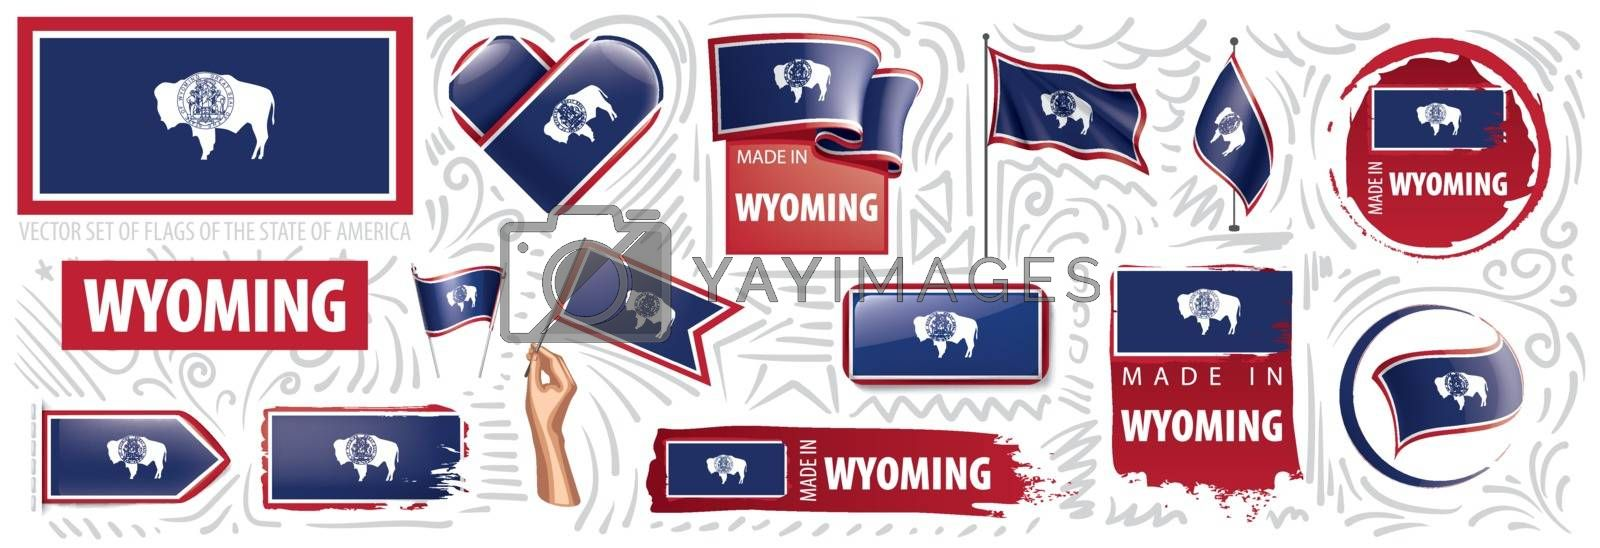 Vector set of flags of the American state of Wyoming in different designs.